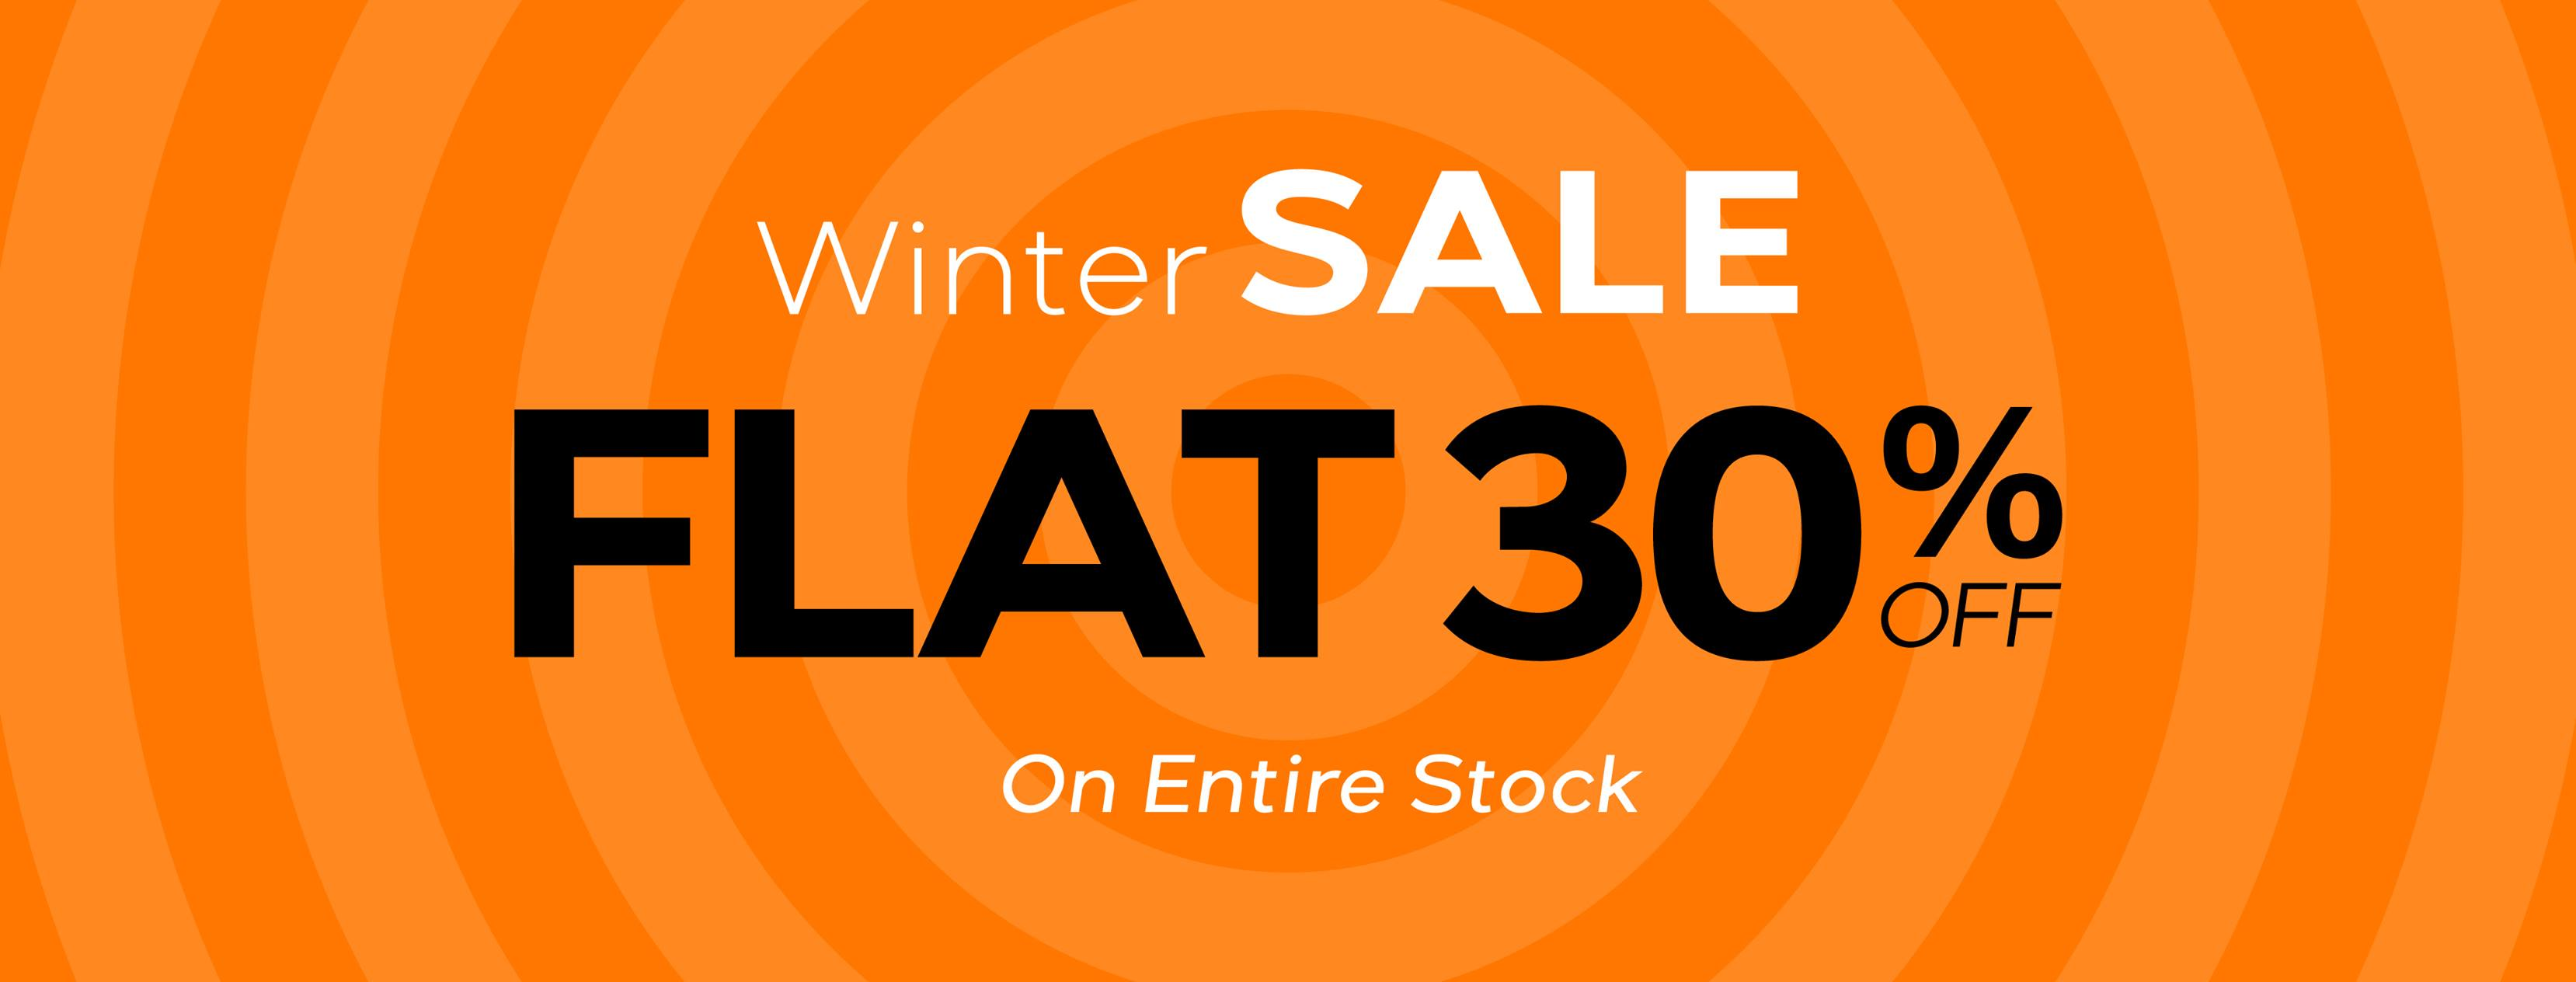 Cougar - Winter Sale